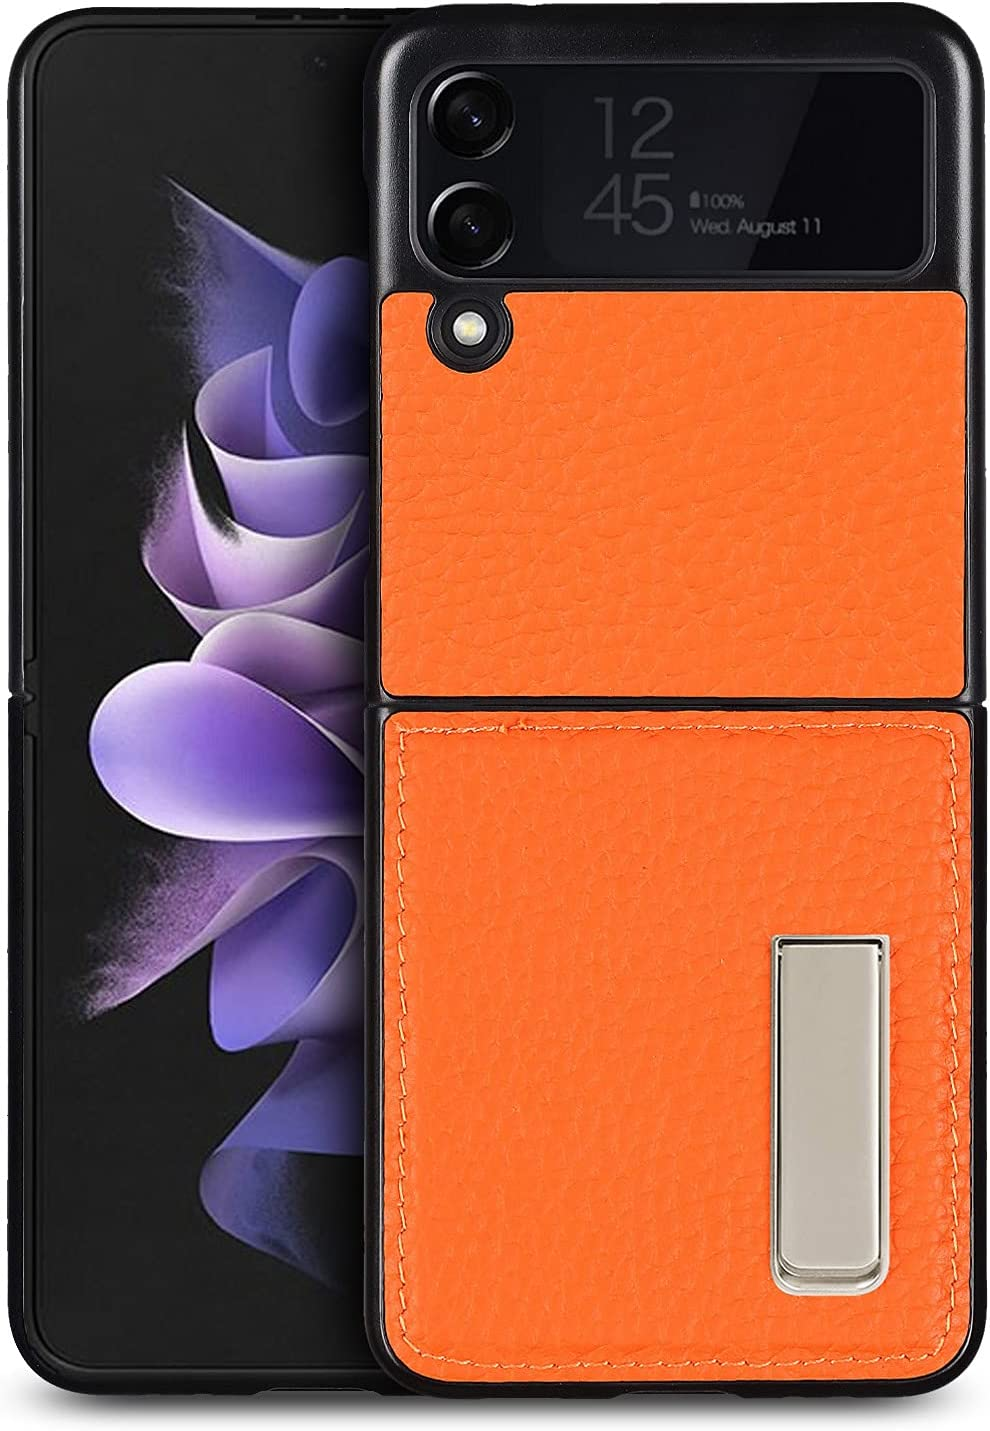 iCoverCase Designed for Samsung Galaxy Z Flip 3 5G Case (2021) with Stand, Magnetic Kickstand Ultra-Thin Genuine Leather Protective Case - (Orange)